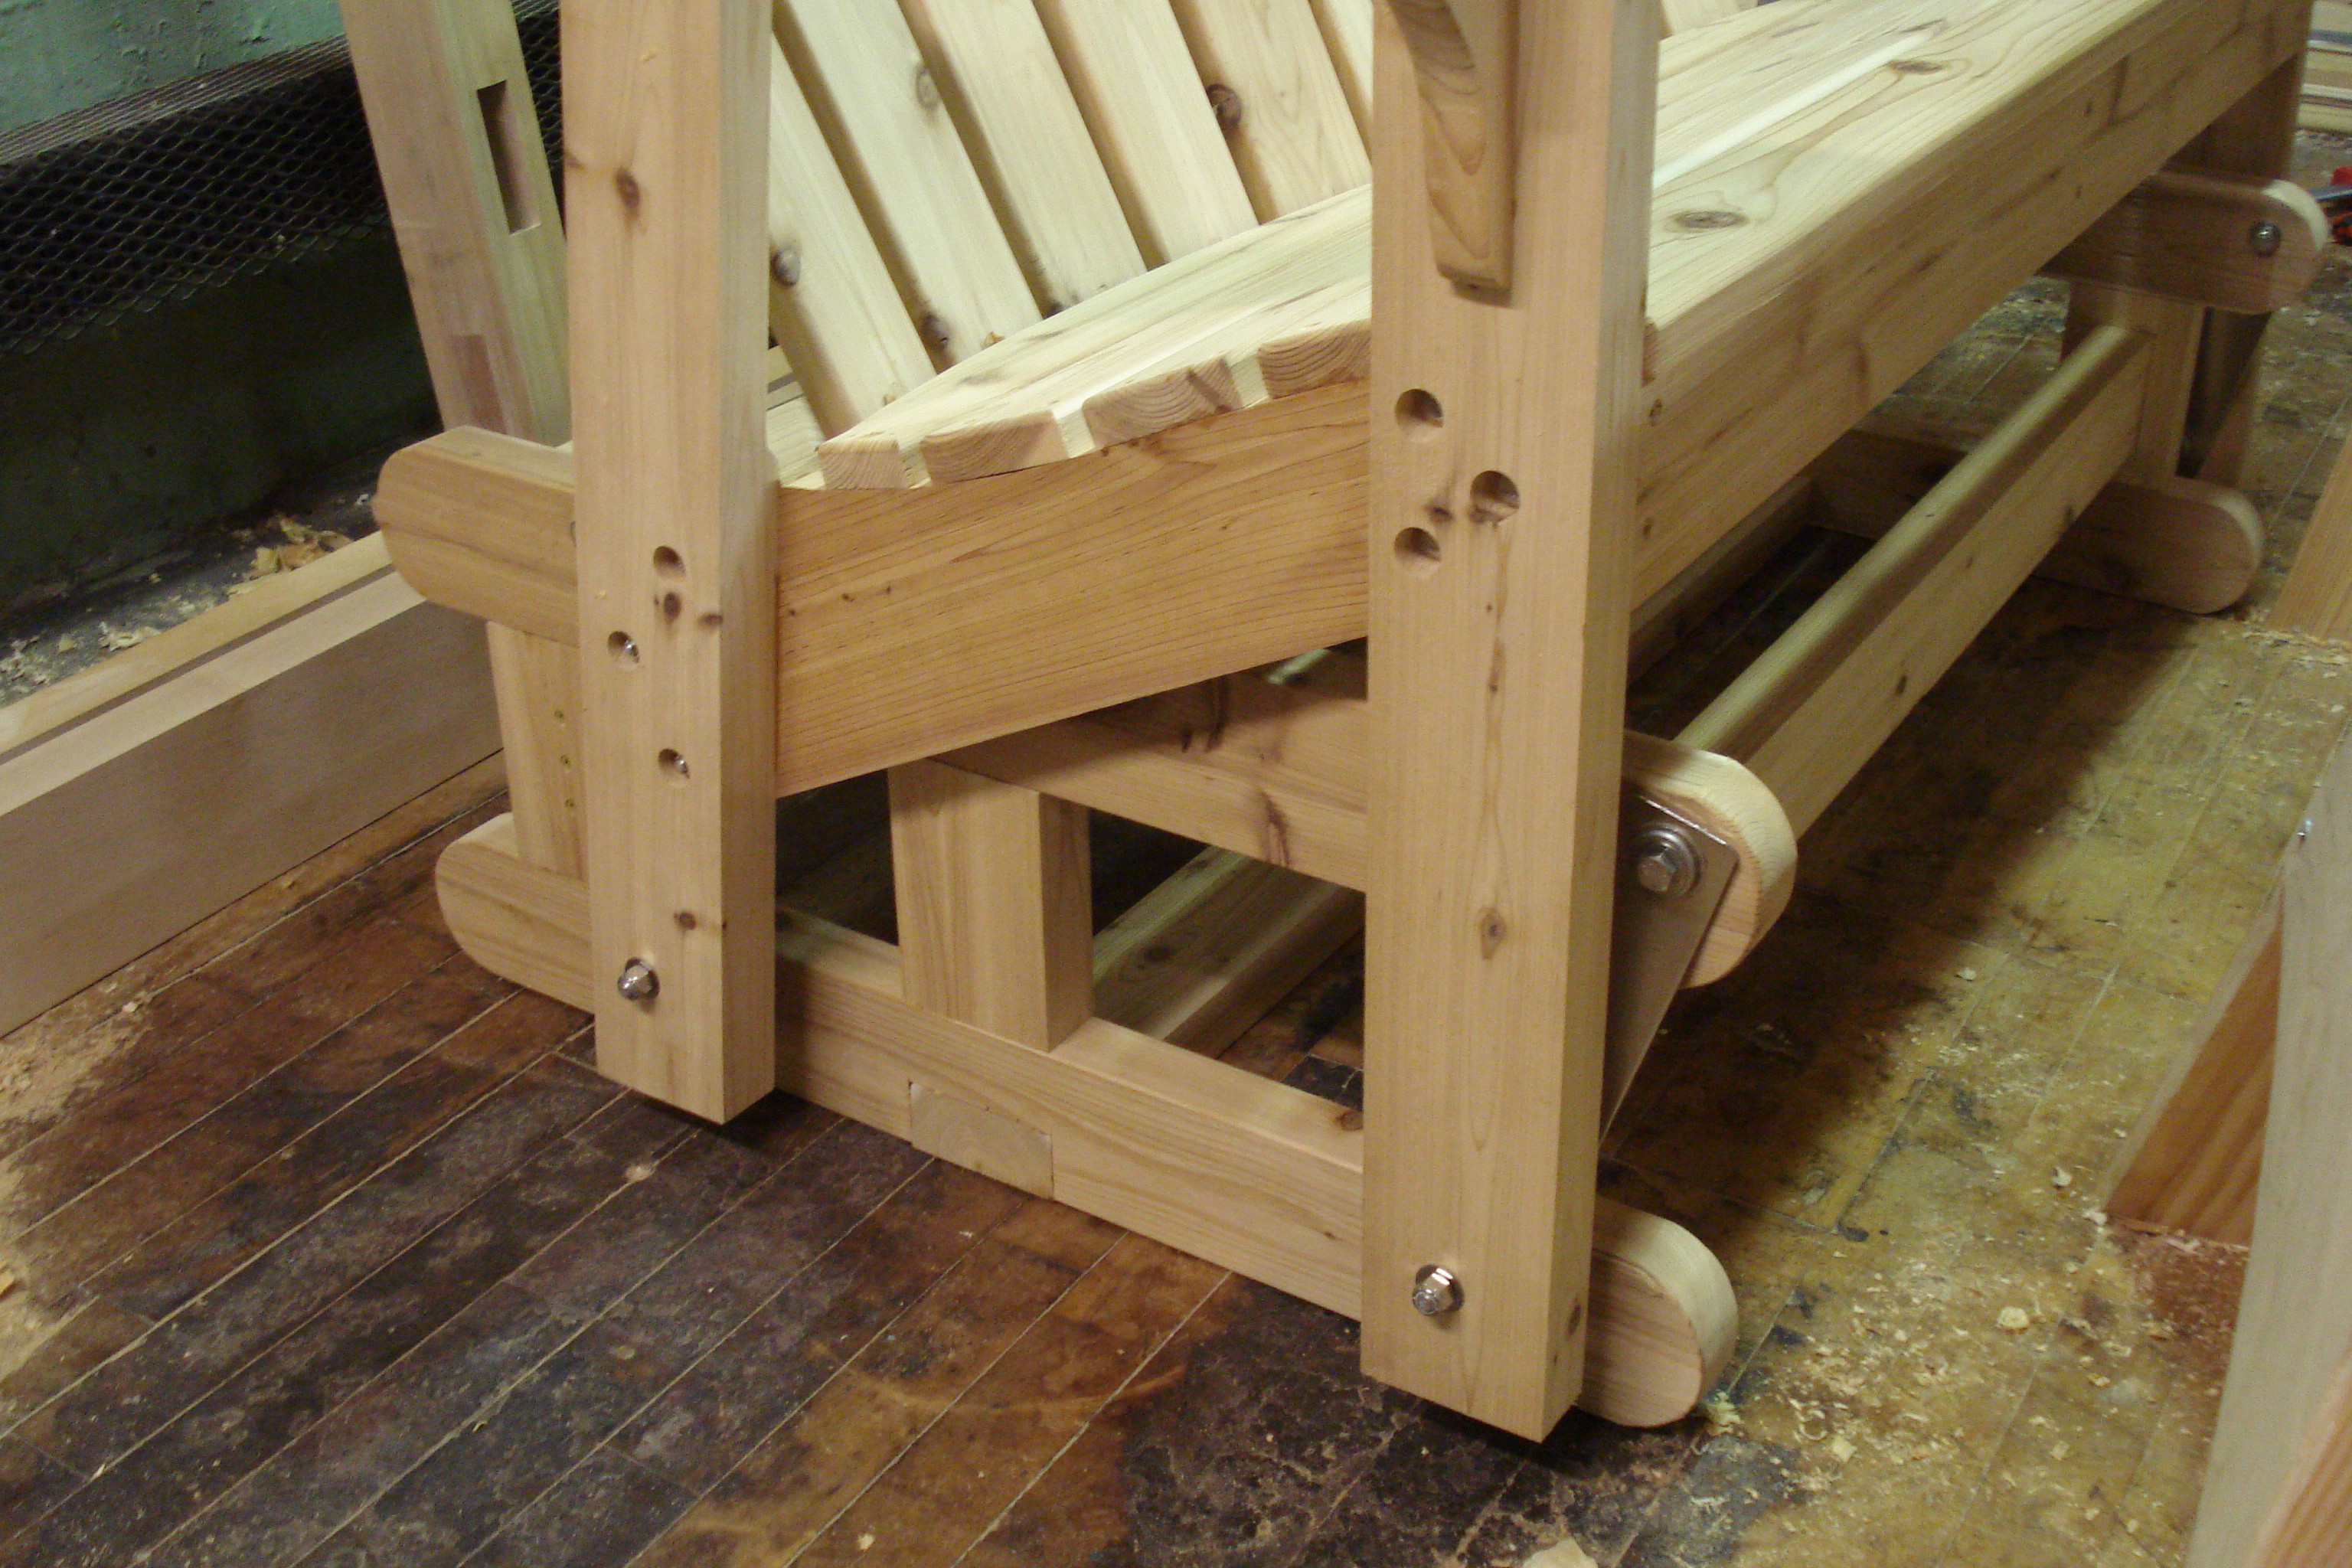 Best ideas about DIY Glider Bench . Save or Pin Build Glider Bench Plans DIY PDF used woodwork machinery Now.